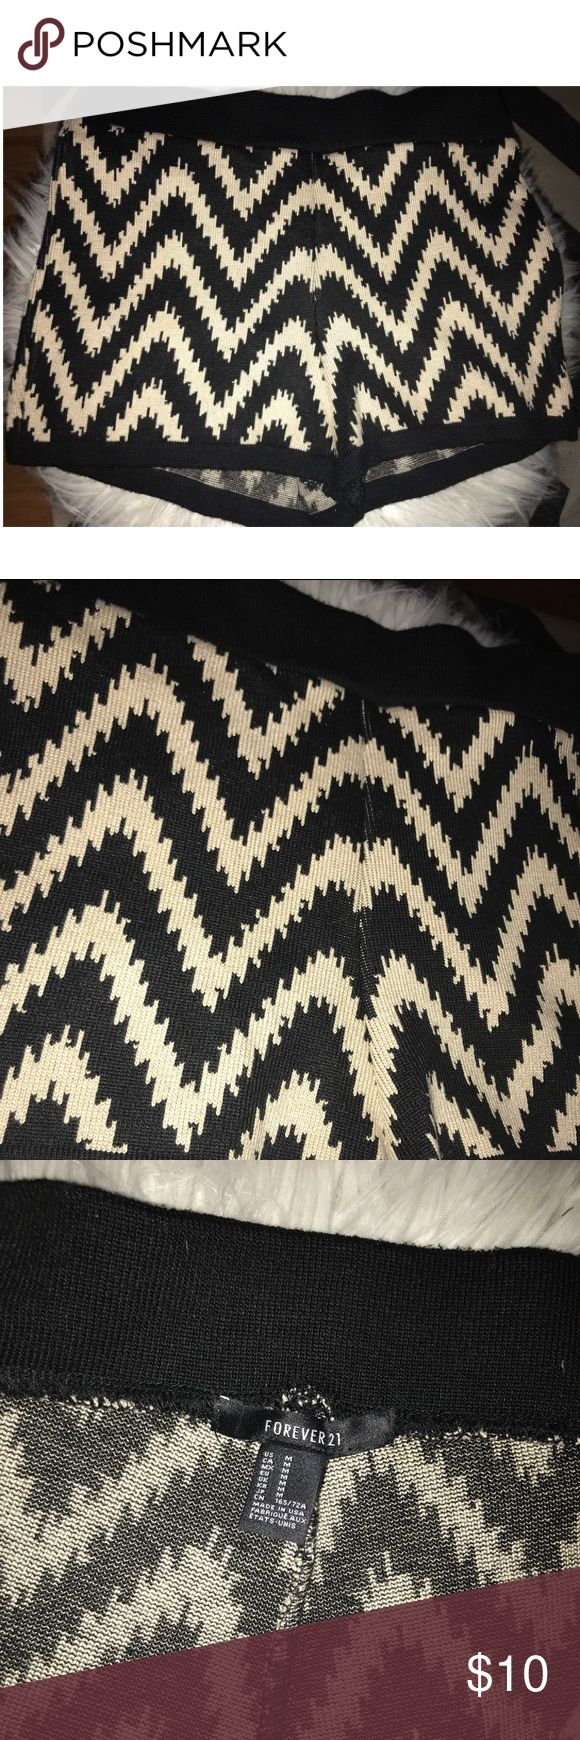 FOREVER 21 Knit Sweater Chevron Black Cream Shorts FOREVER 21 Knit Sweater Chevron Black Cream Shorts. Only worn once. Like new without tags. GREAT condition. Forever 21 Shorts